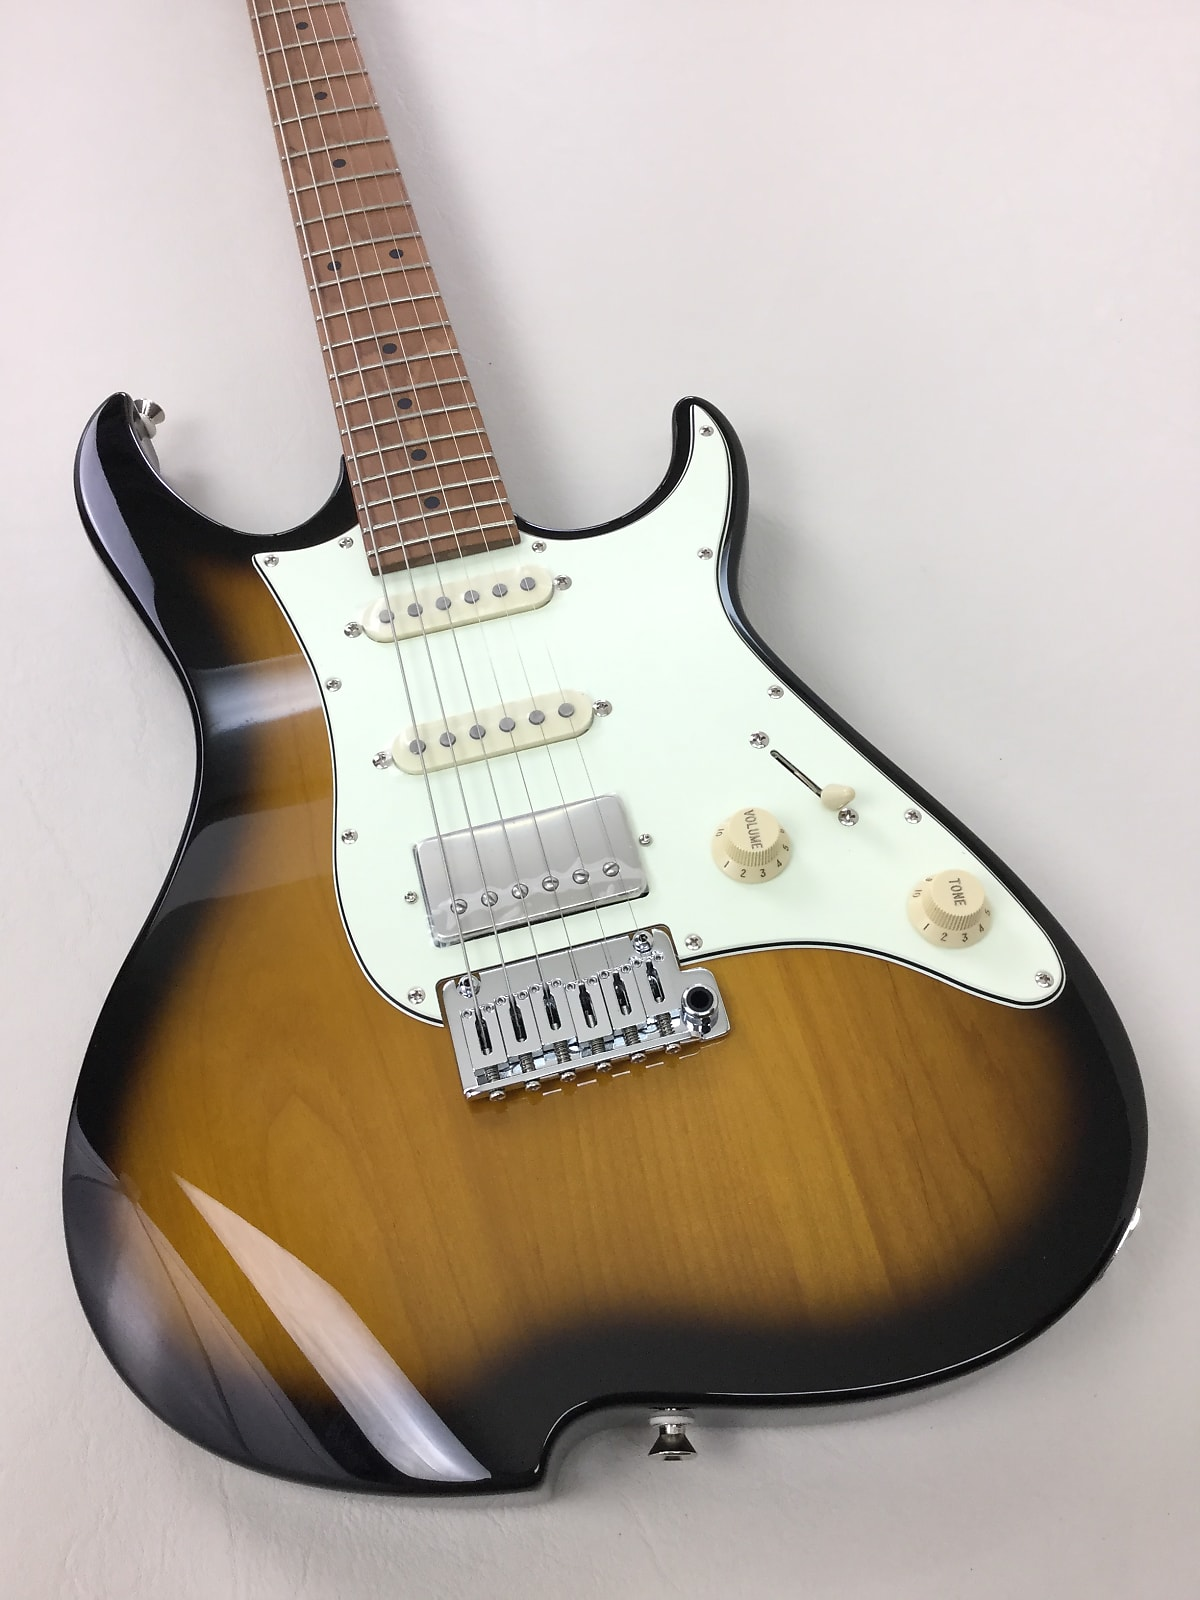 Vola OZ RMN Sunburst - New 2020 Model (w/ Vola Deluxe gig bag) + Free Shipping